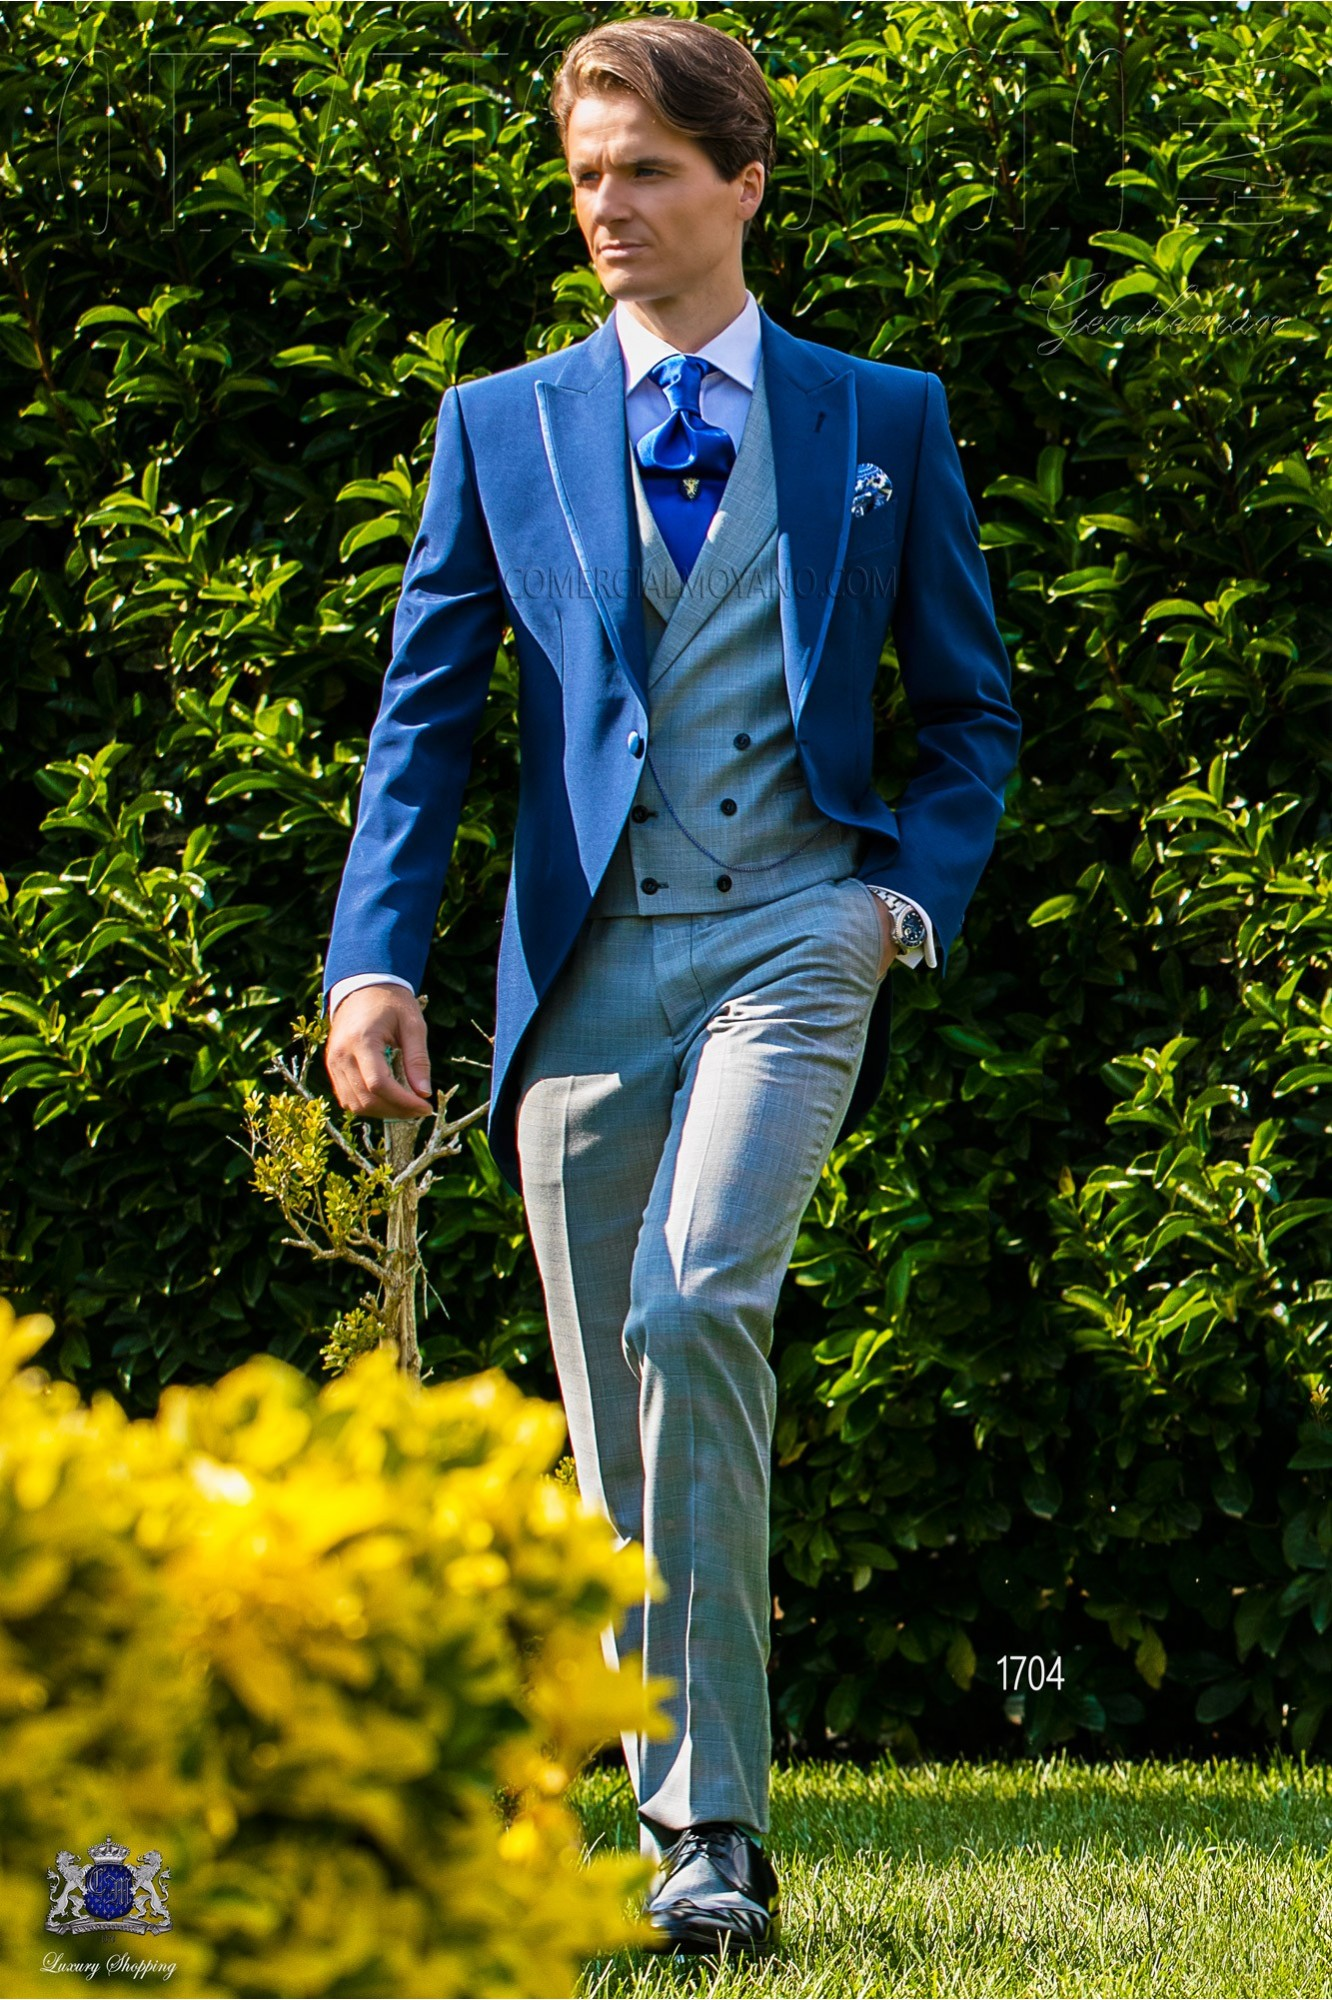 Royal blue morning suit with Prince of Wales trousers model 1704 Ottavio Nuccio Gala